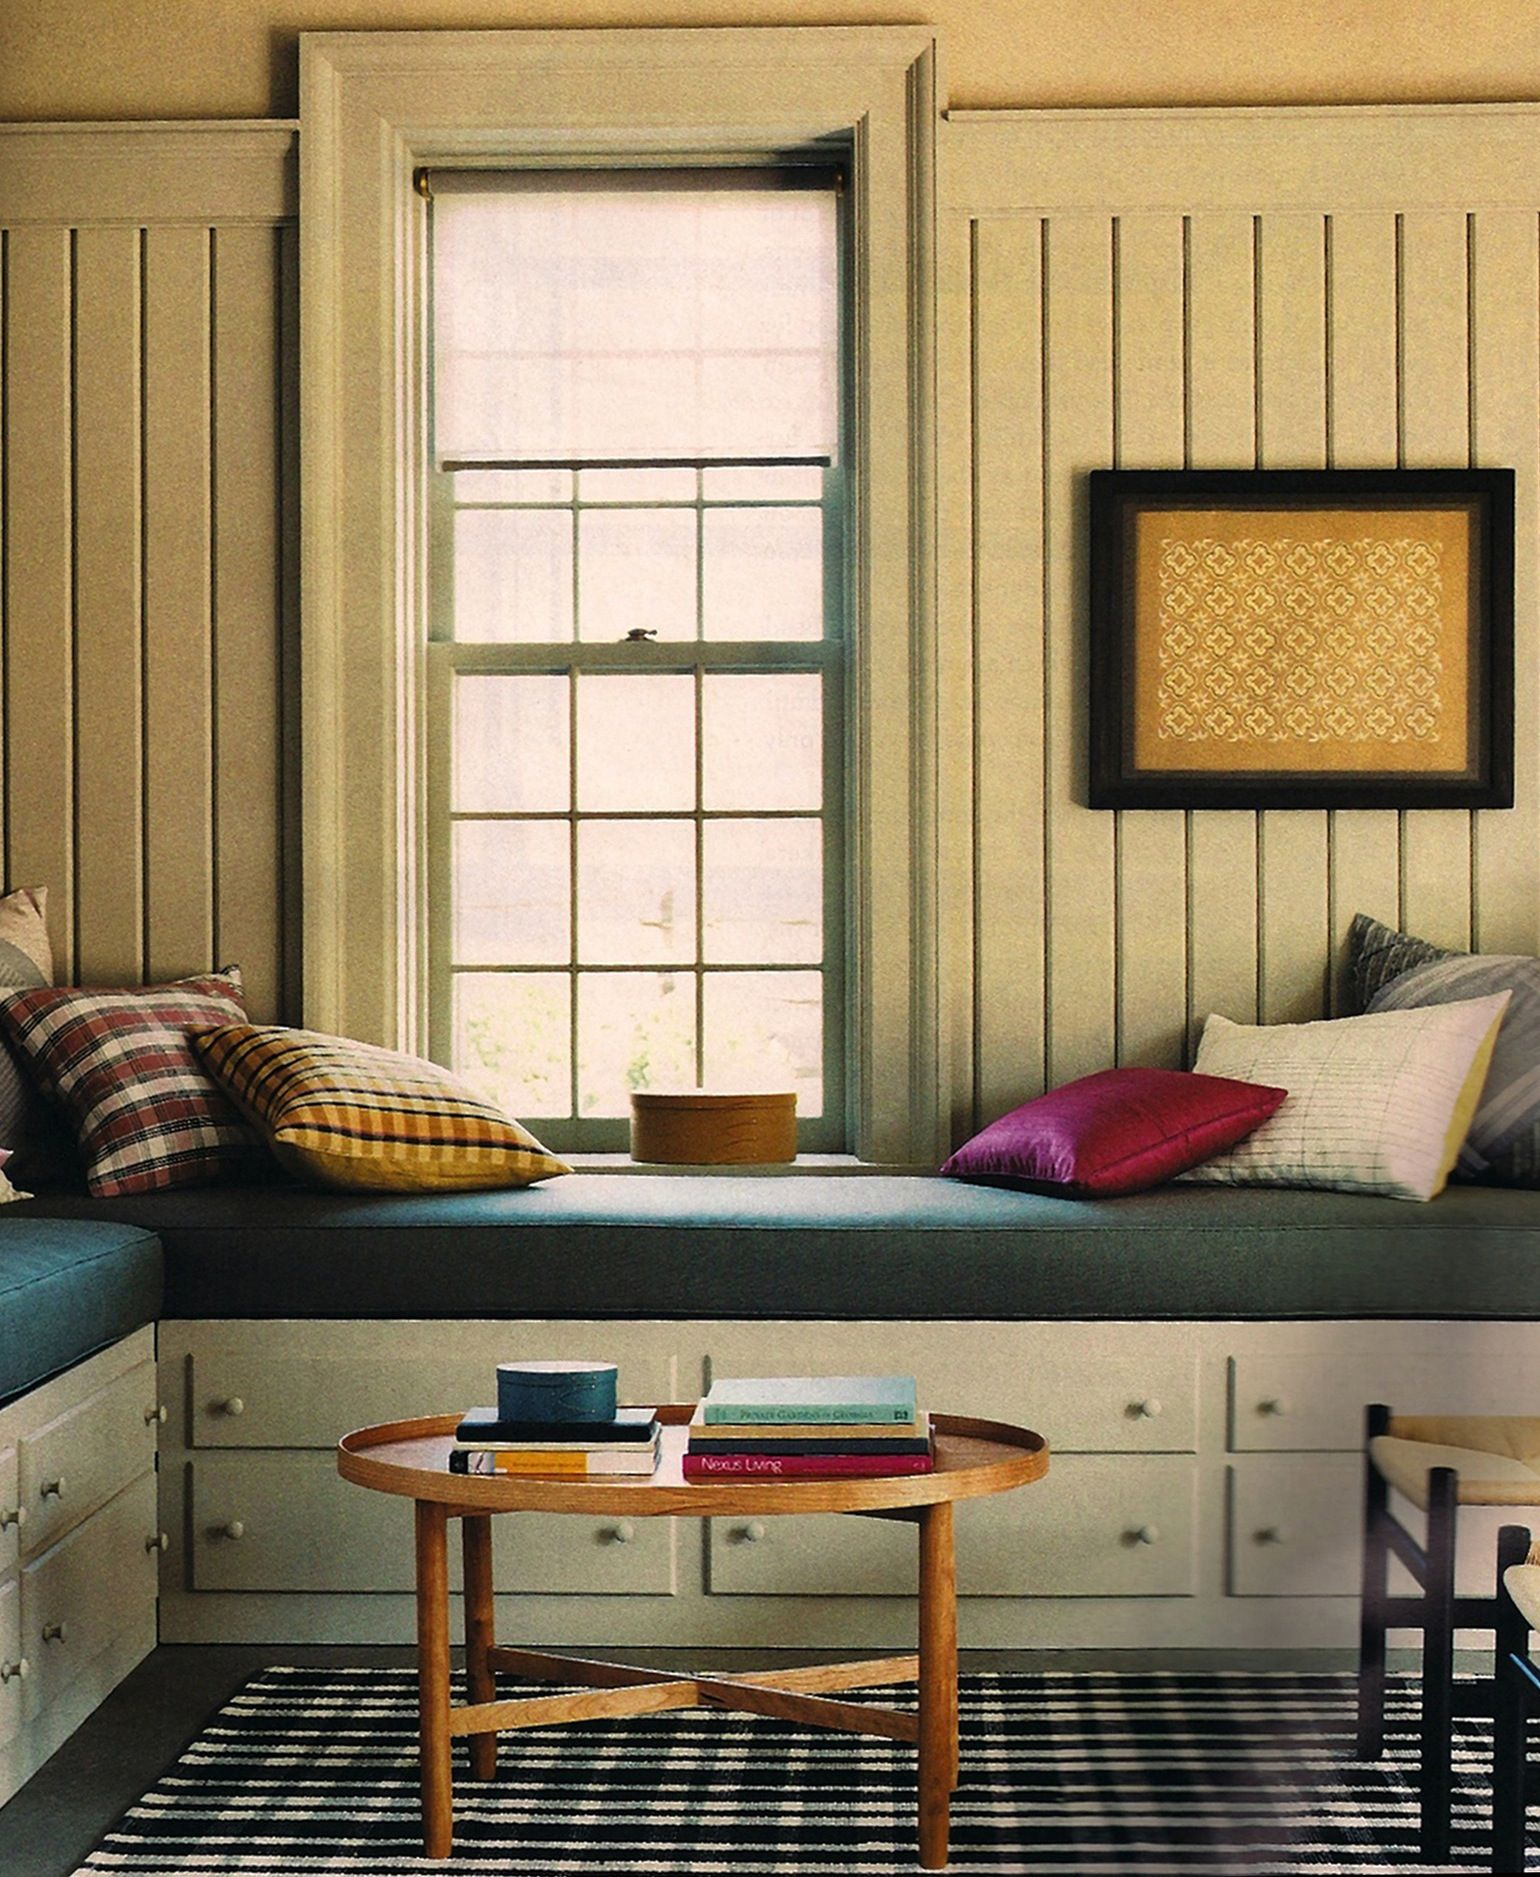 Window seat ideas living room  i should probably just buy some plaid pillows instead of constantly